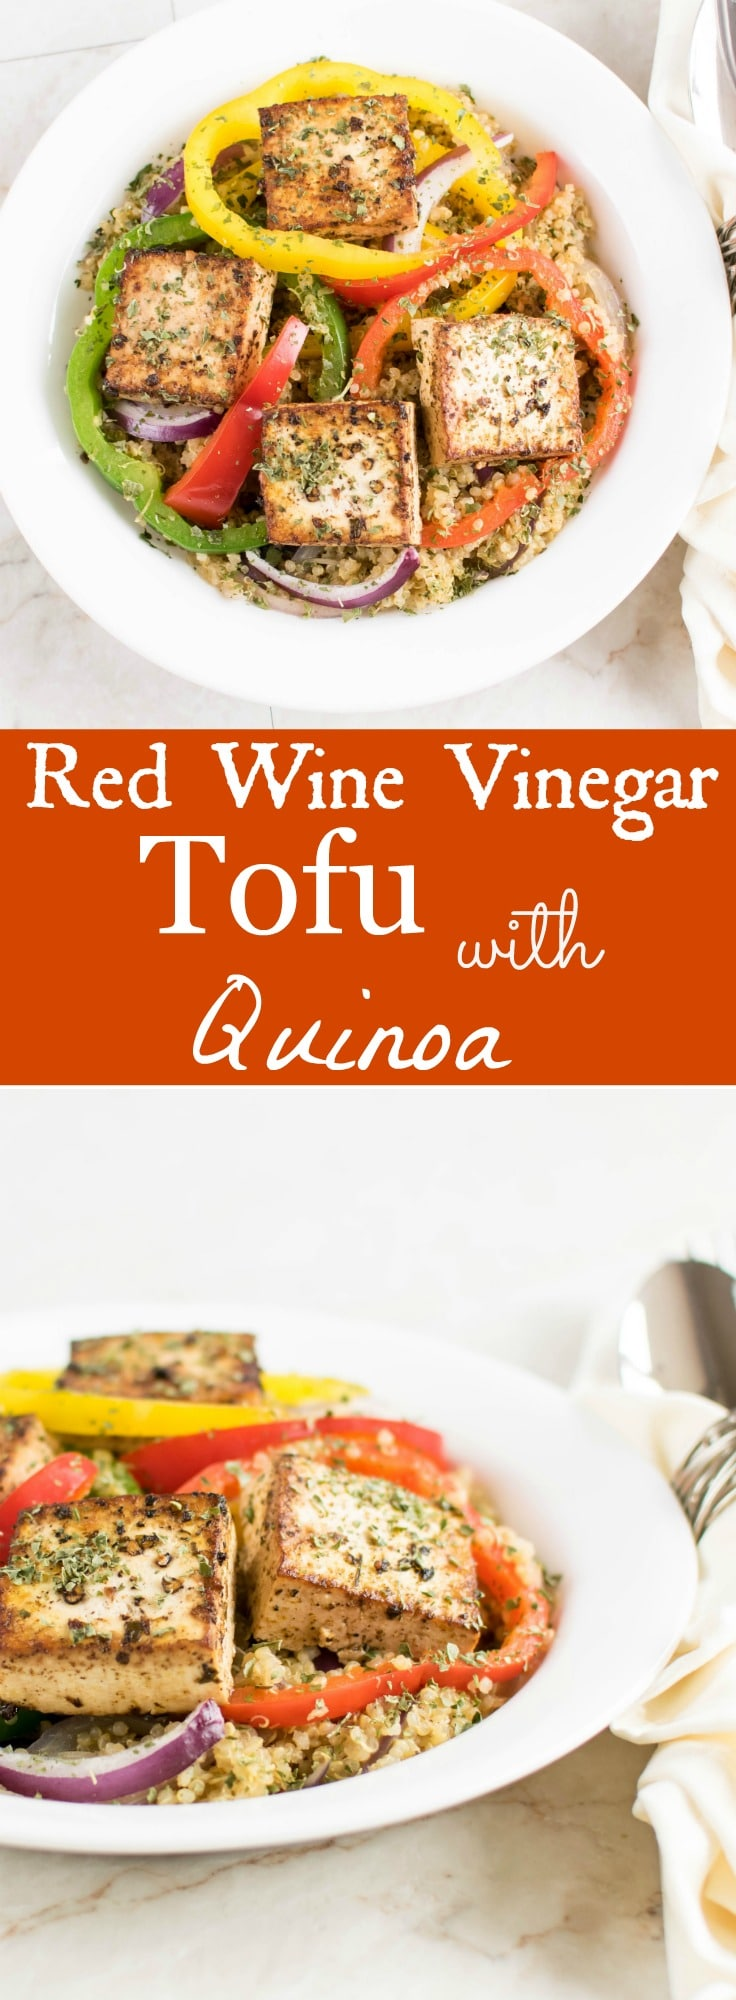 Red Wine Vinegar Tofu with Quinoa   30 minutes vegan and gluten free dish flavored with Italian seasoning, herbs and cooked in red wine vinegar   kiipfit.com